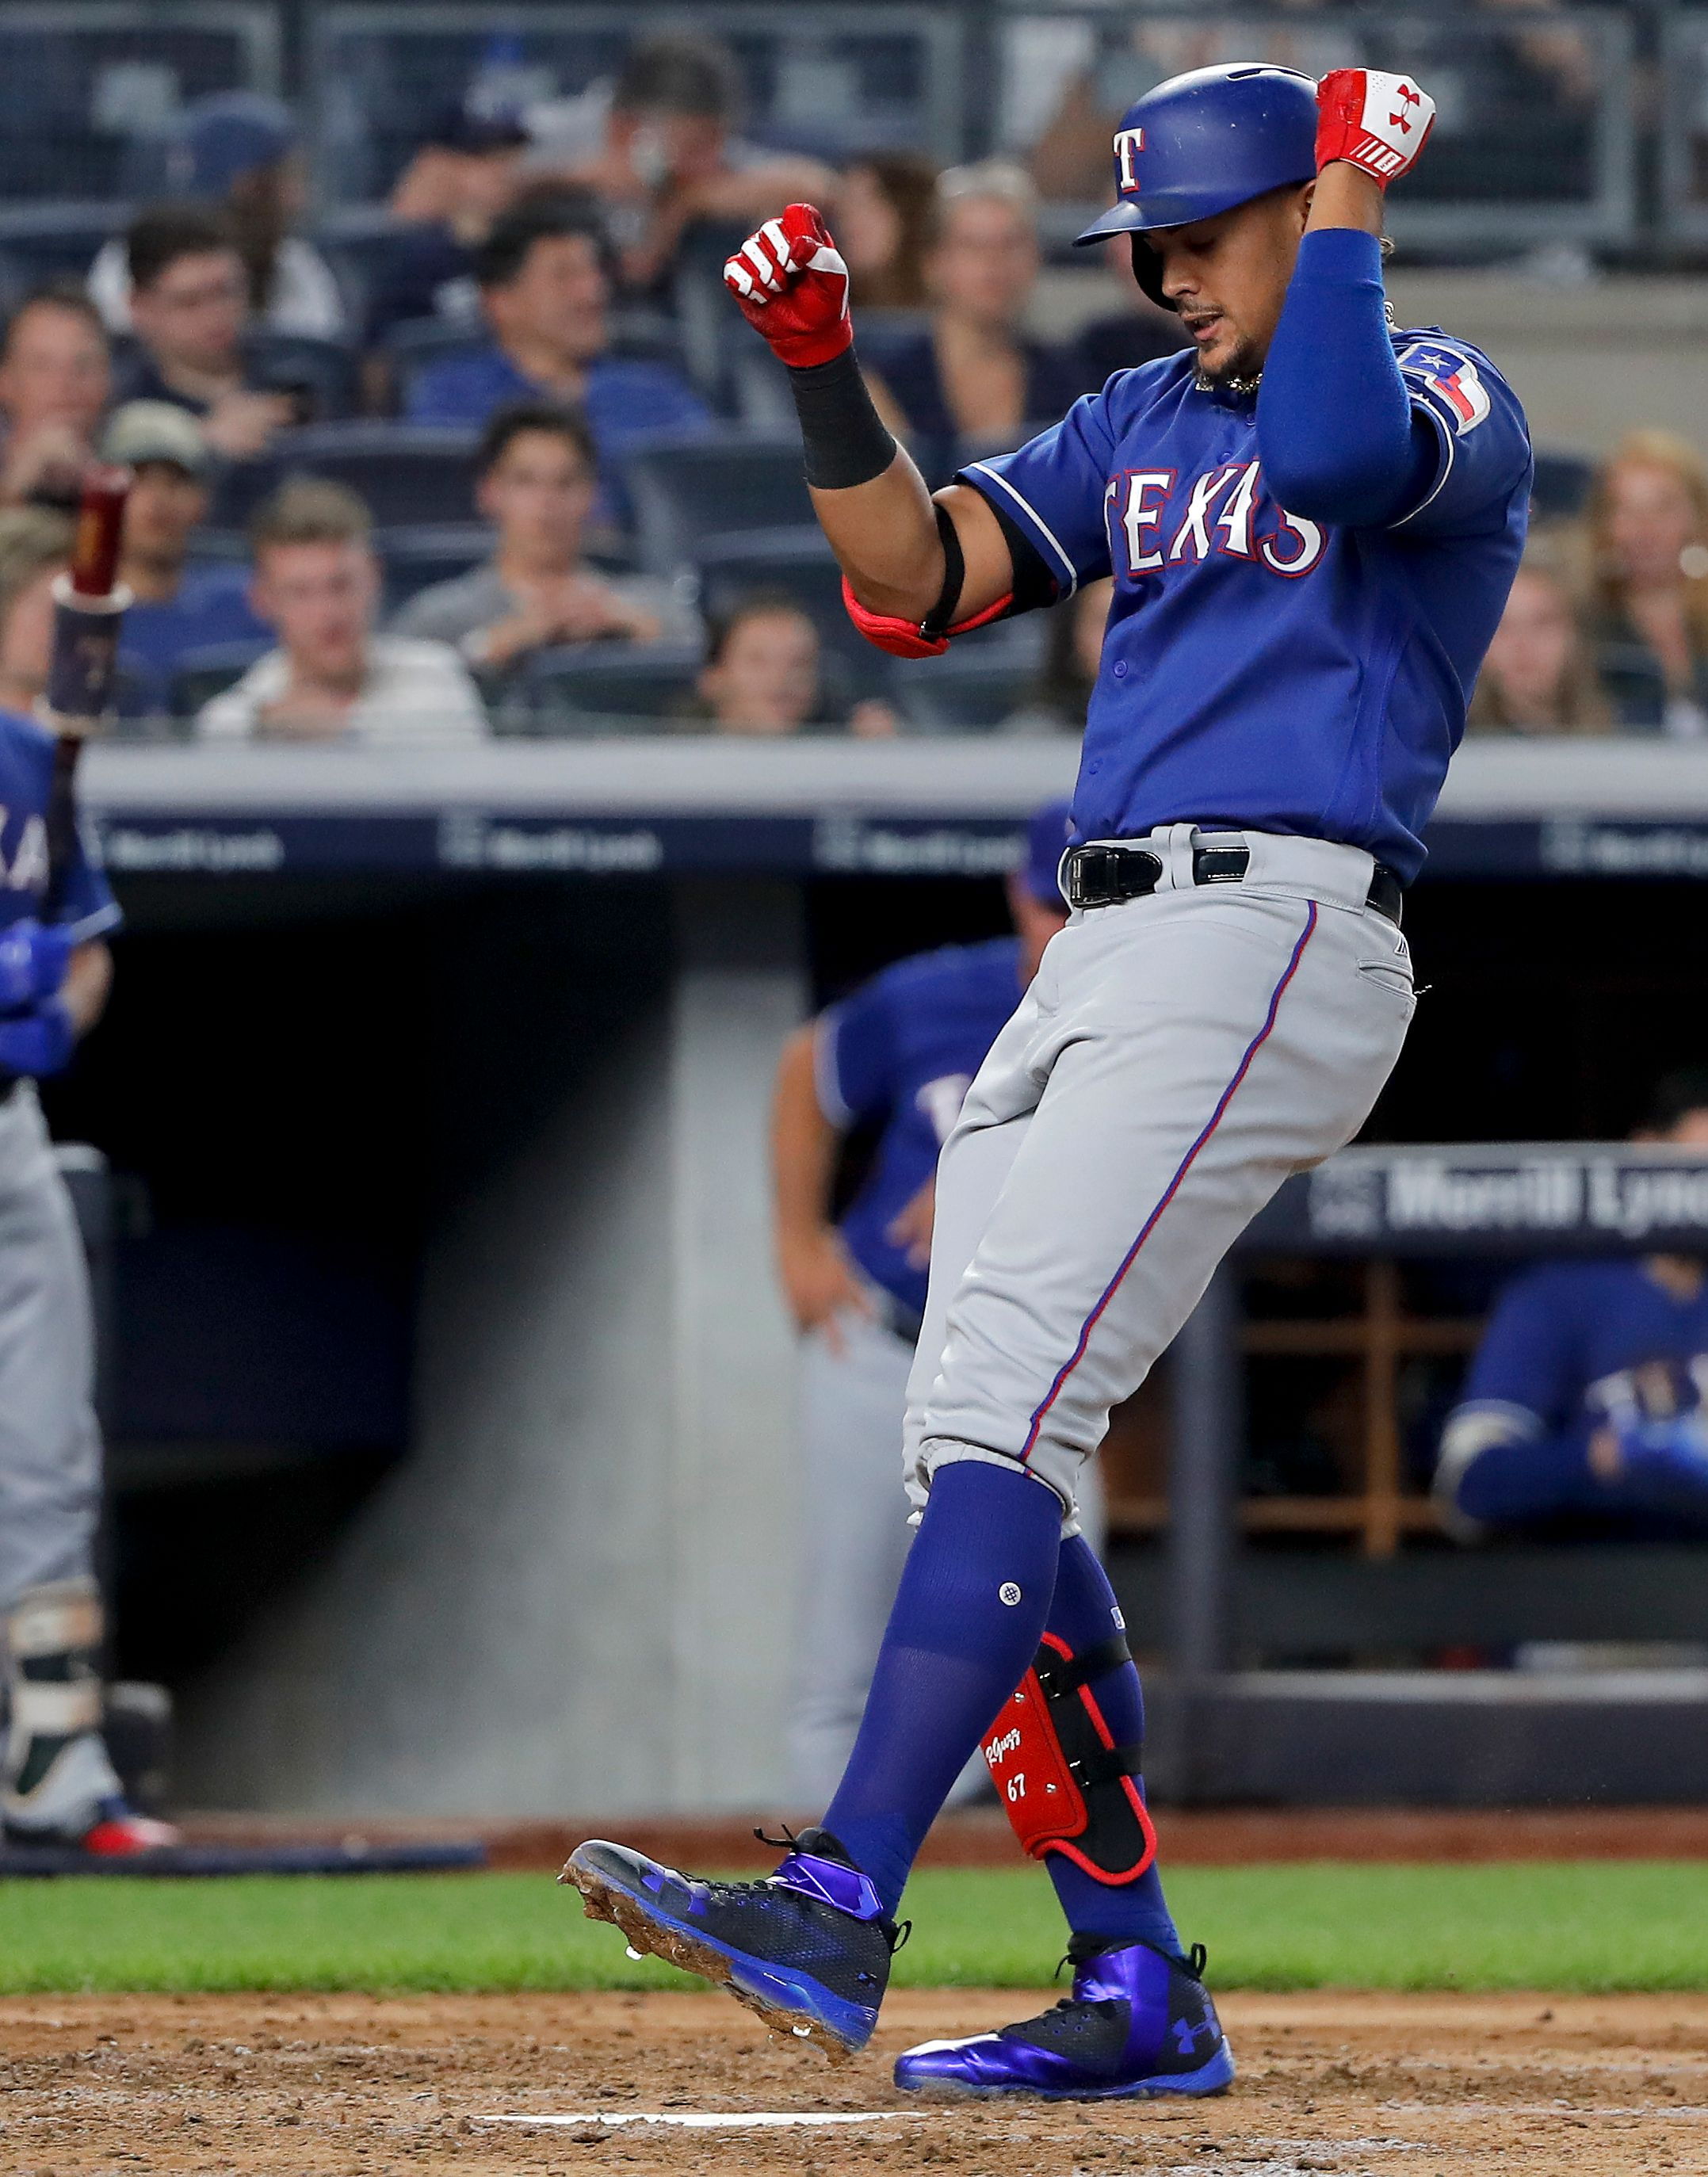 Guzman 1st rookie to hit 3 HRs in game vs Yanks, Texas wins